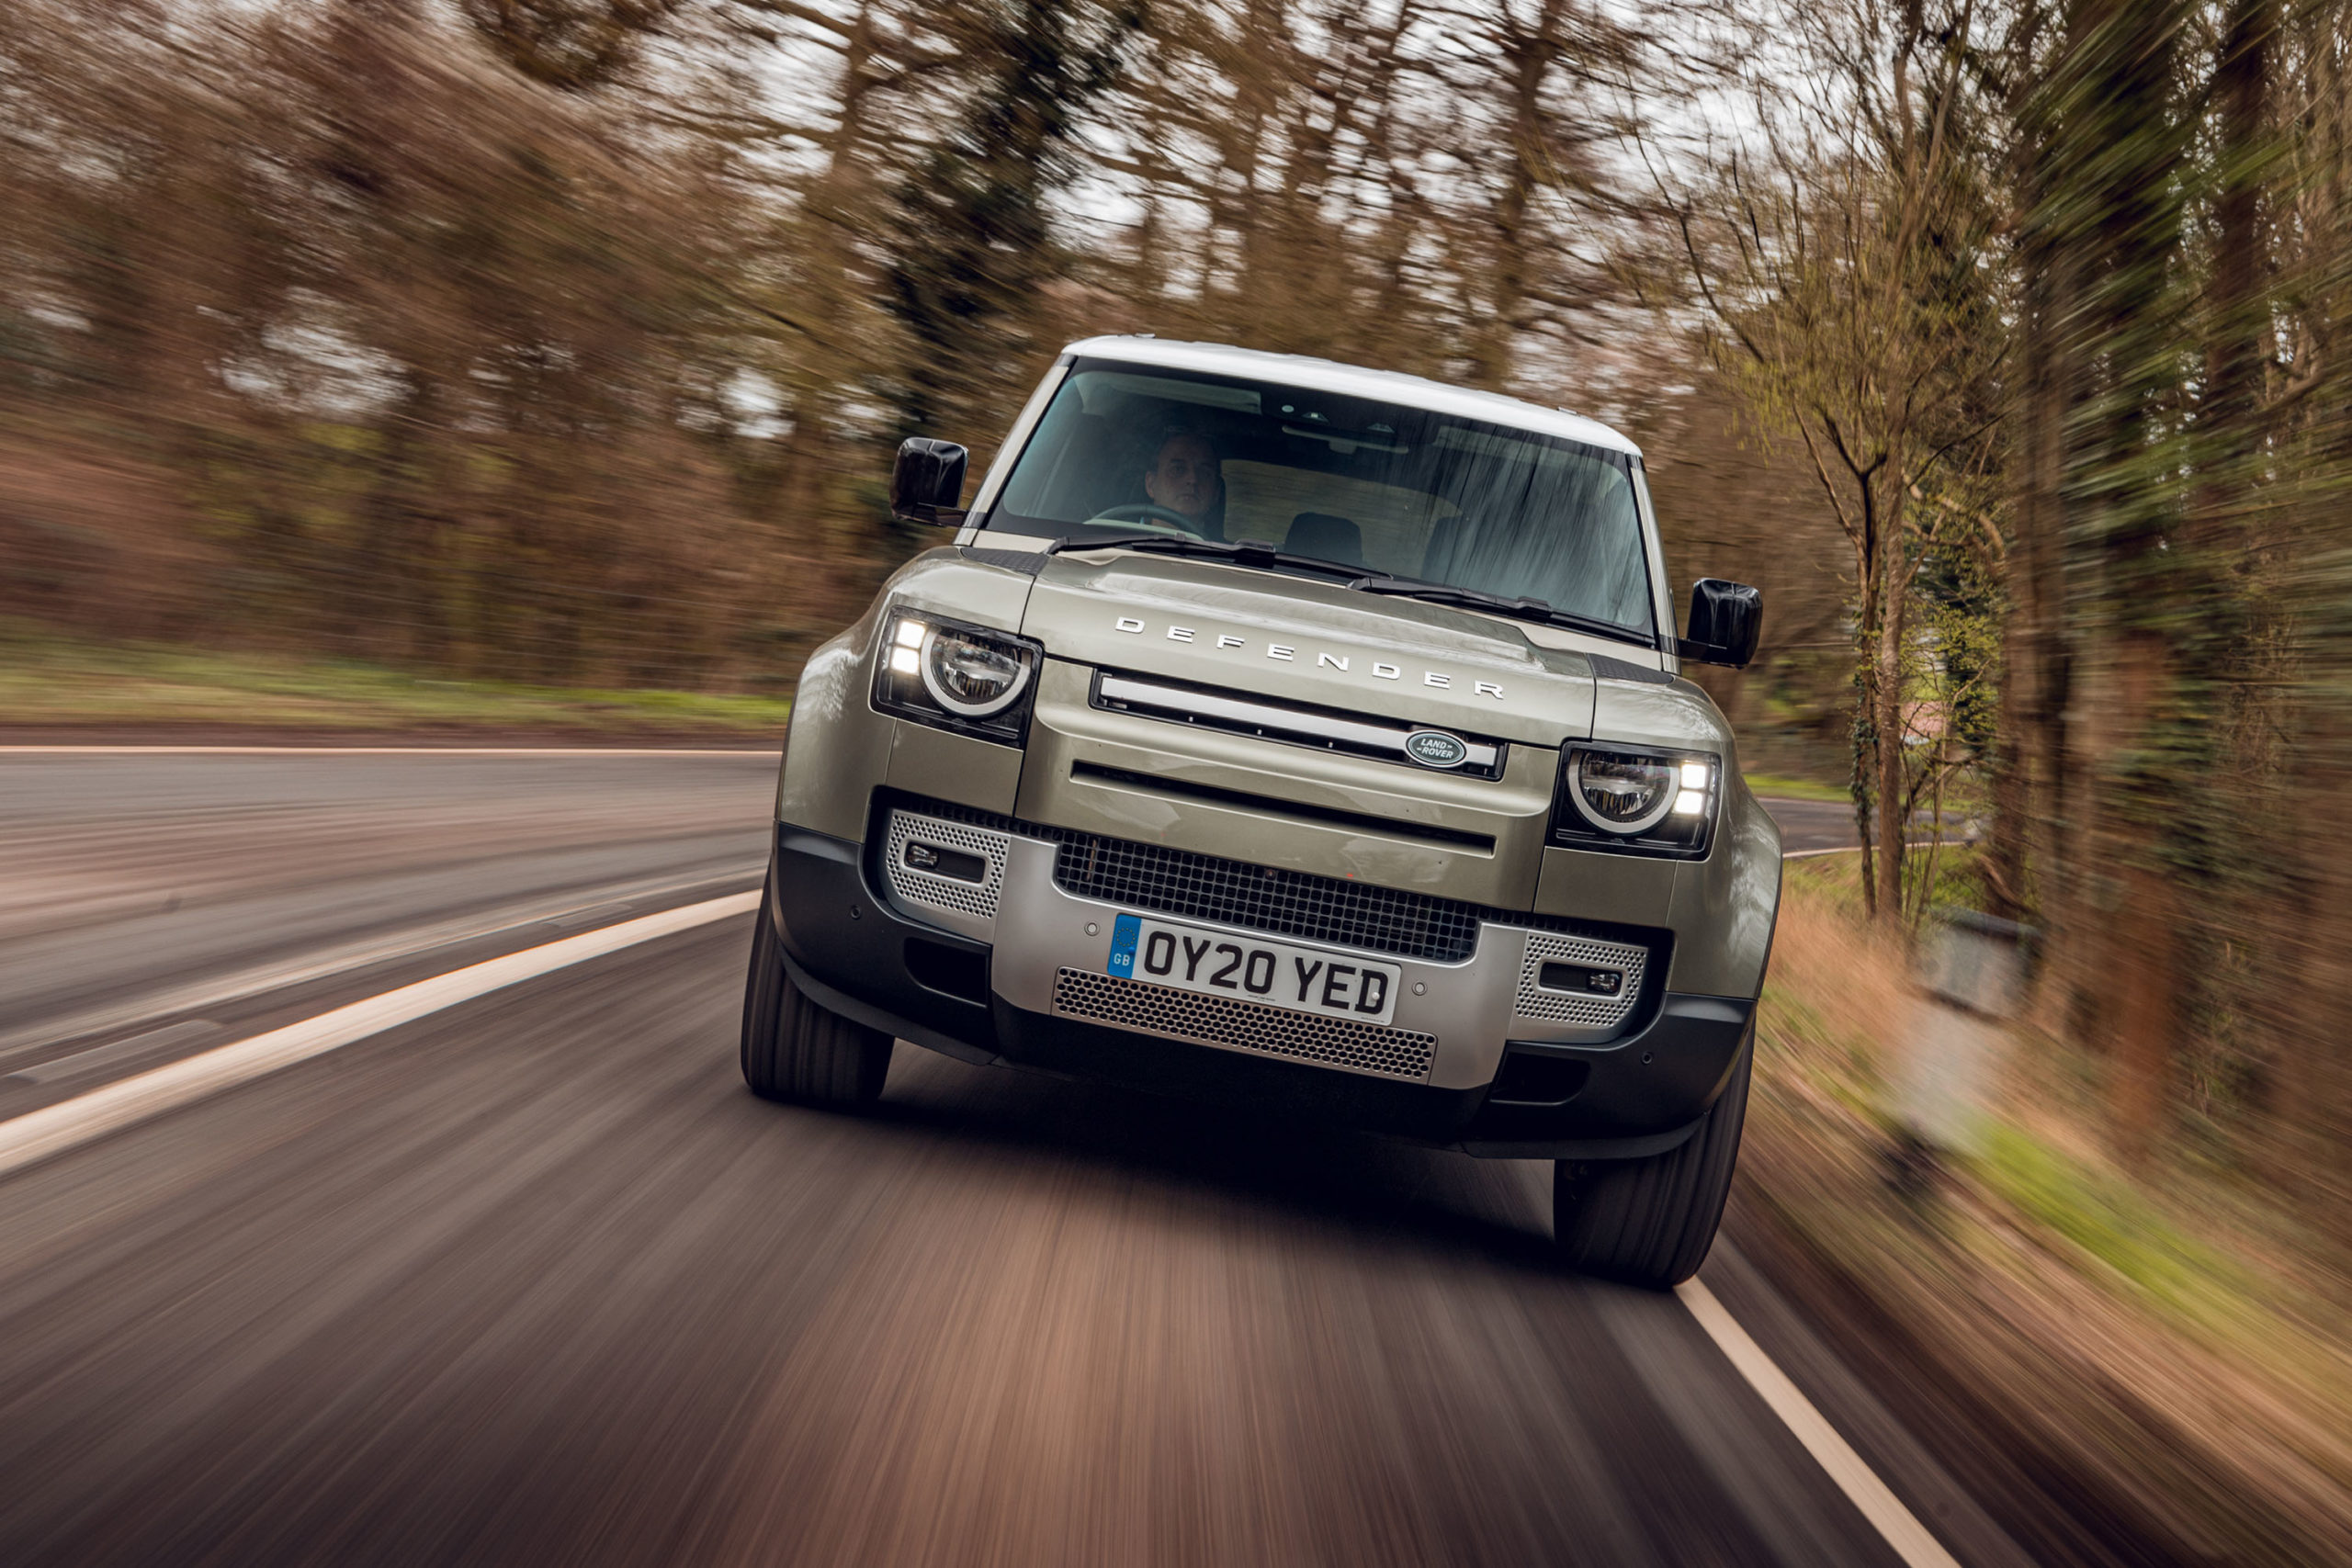 2020 Land Rover Defender review: paddock prodigy